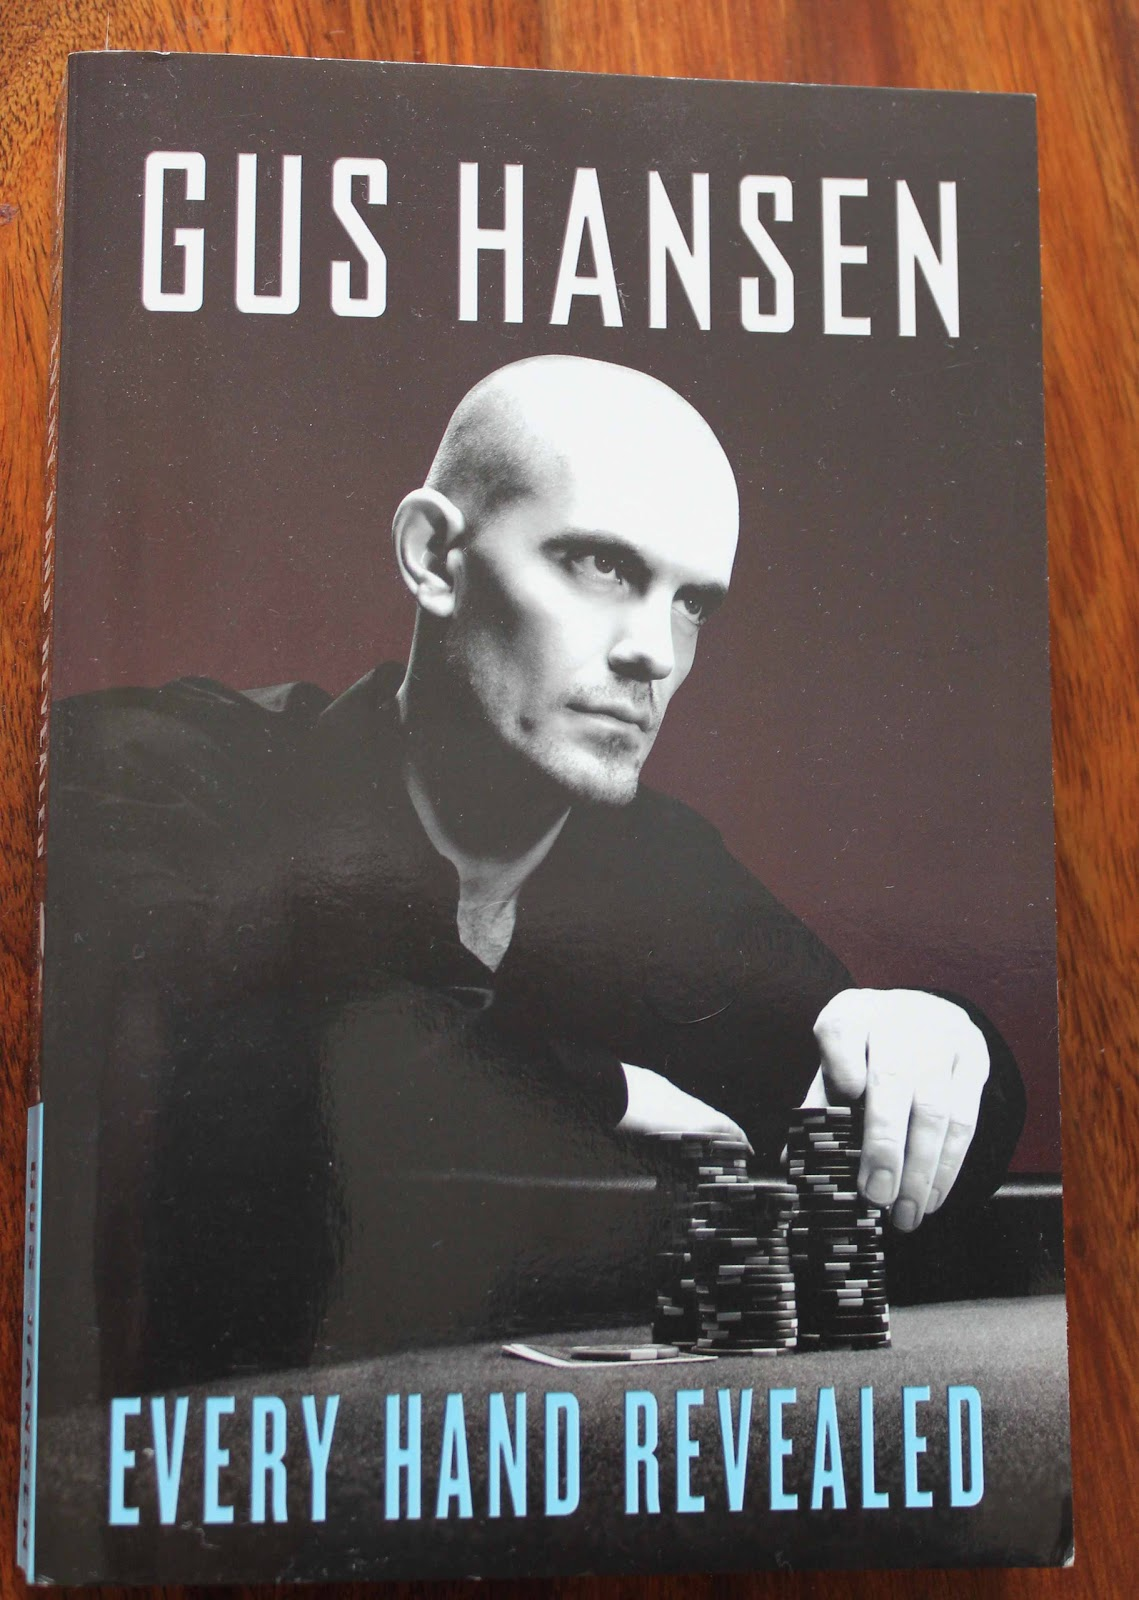 Gus hansen every hand revealed pdf download free.